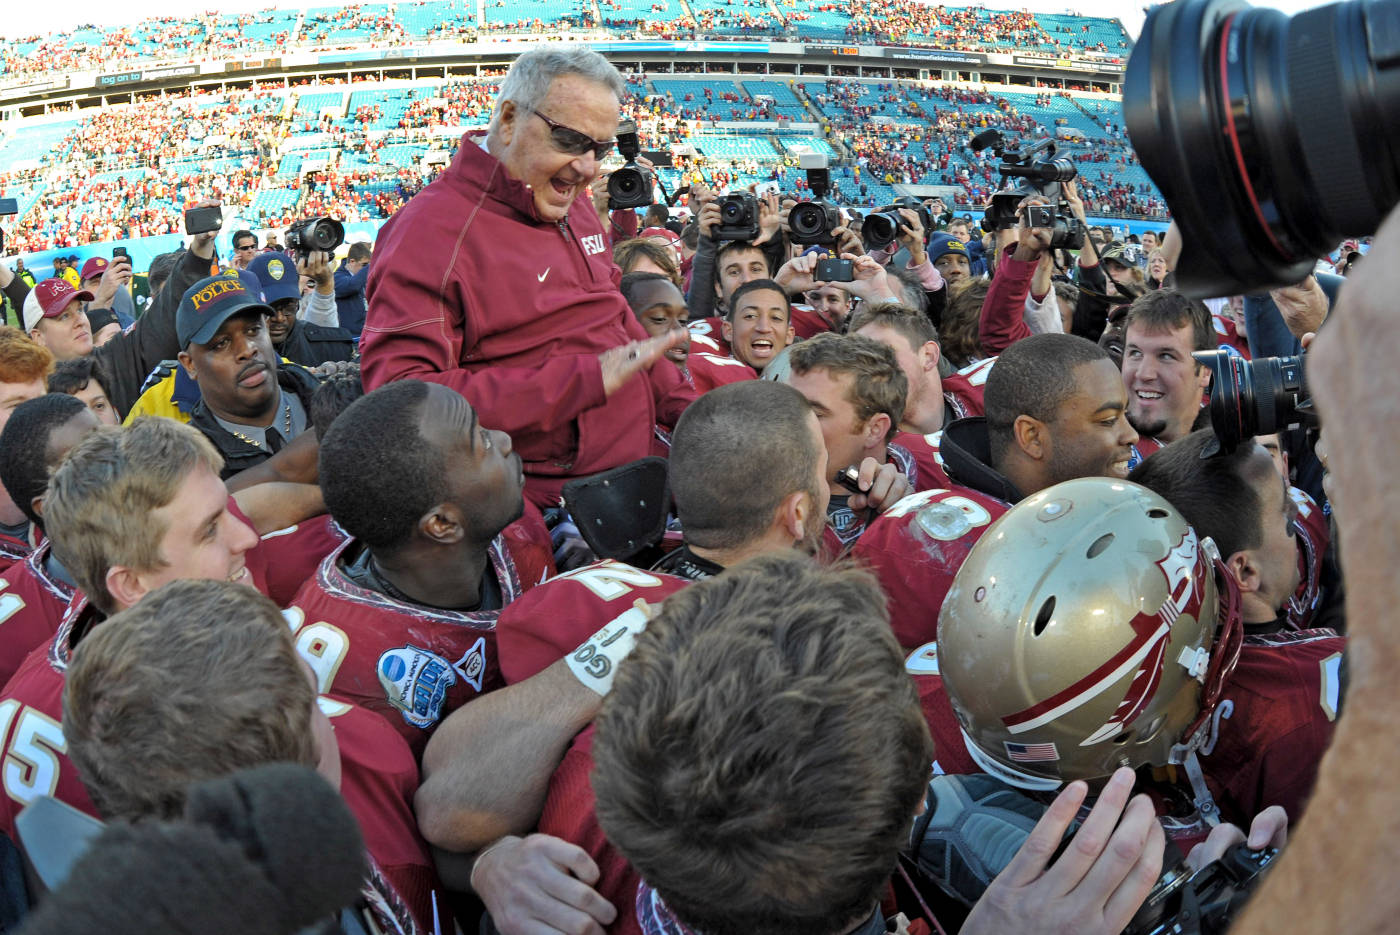 Players carry Bowden off the field